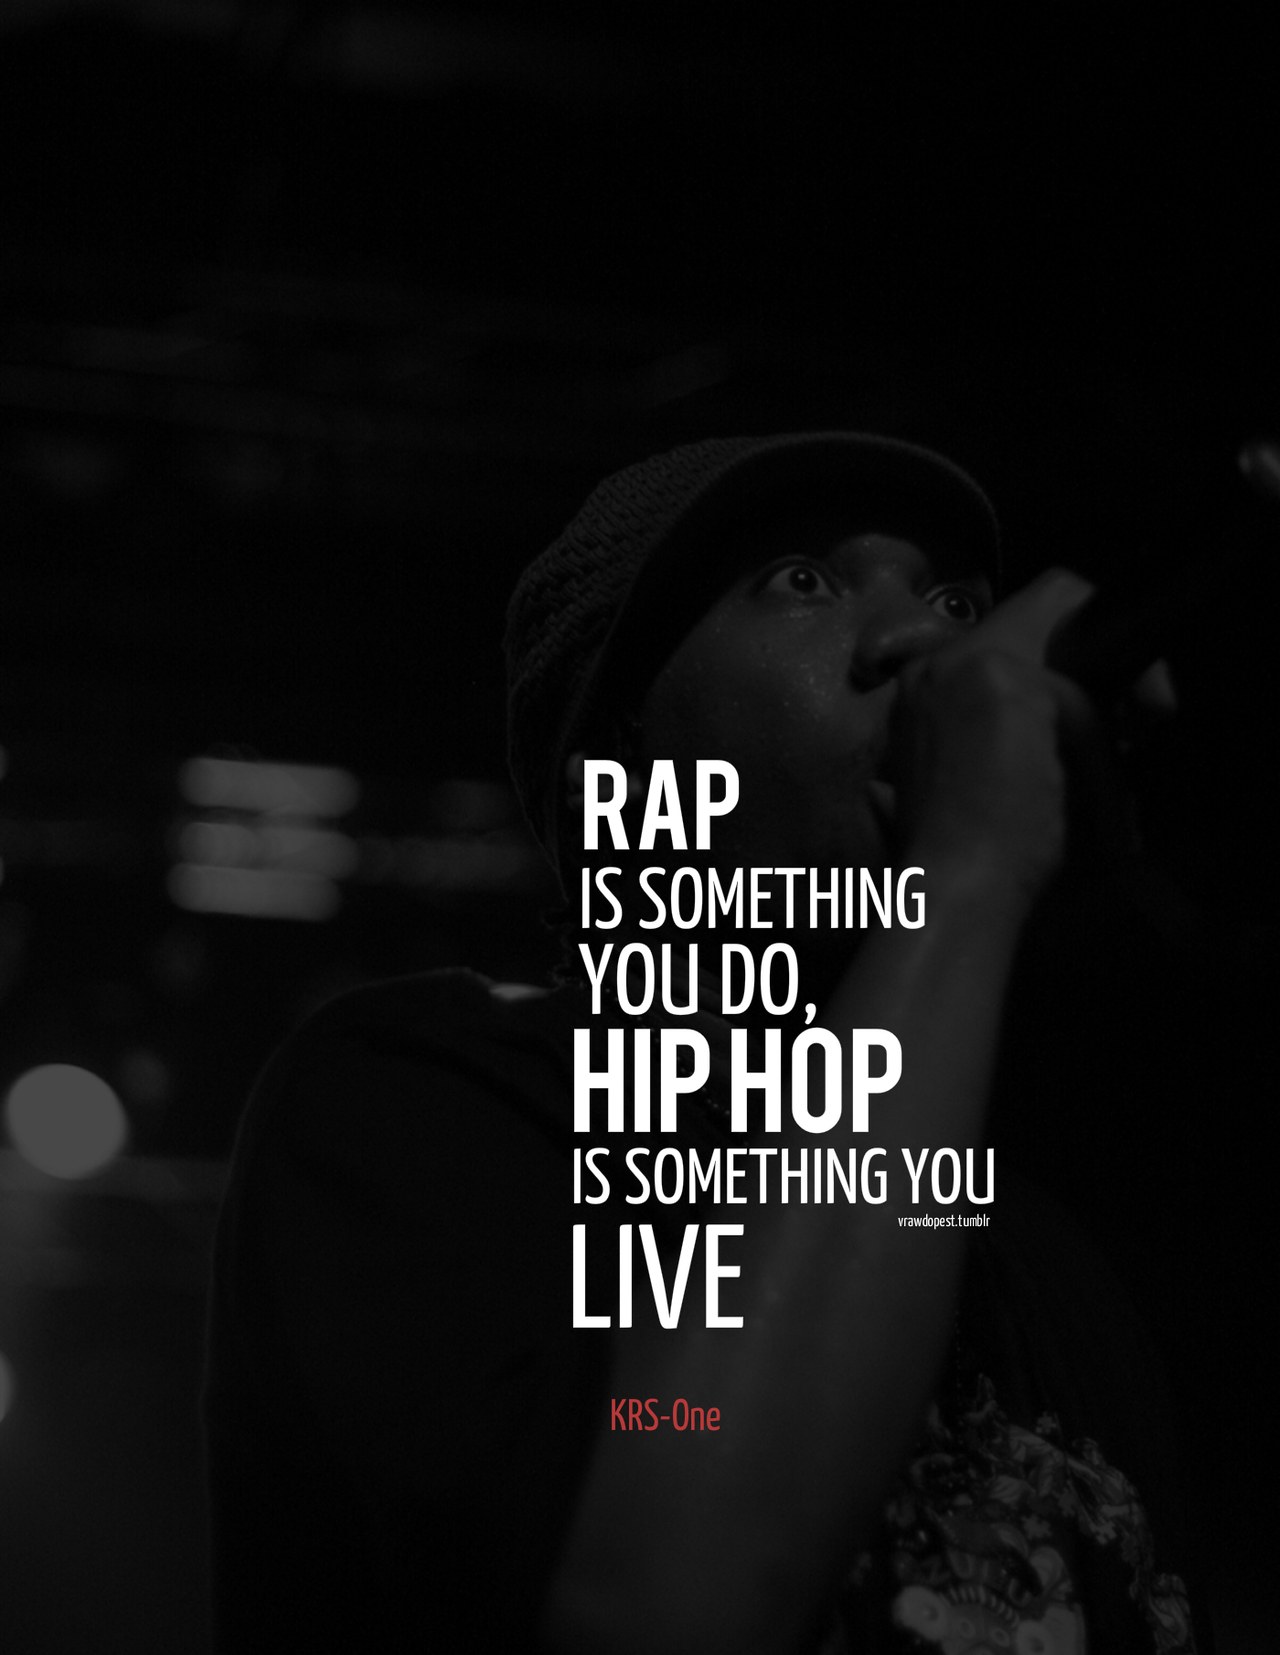 does hip hop influence other parts This study examined the culture of rap/hip-hop music and how misogynistic lyrical messages influenced listeners' attitudes toward intimate partner violence.